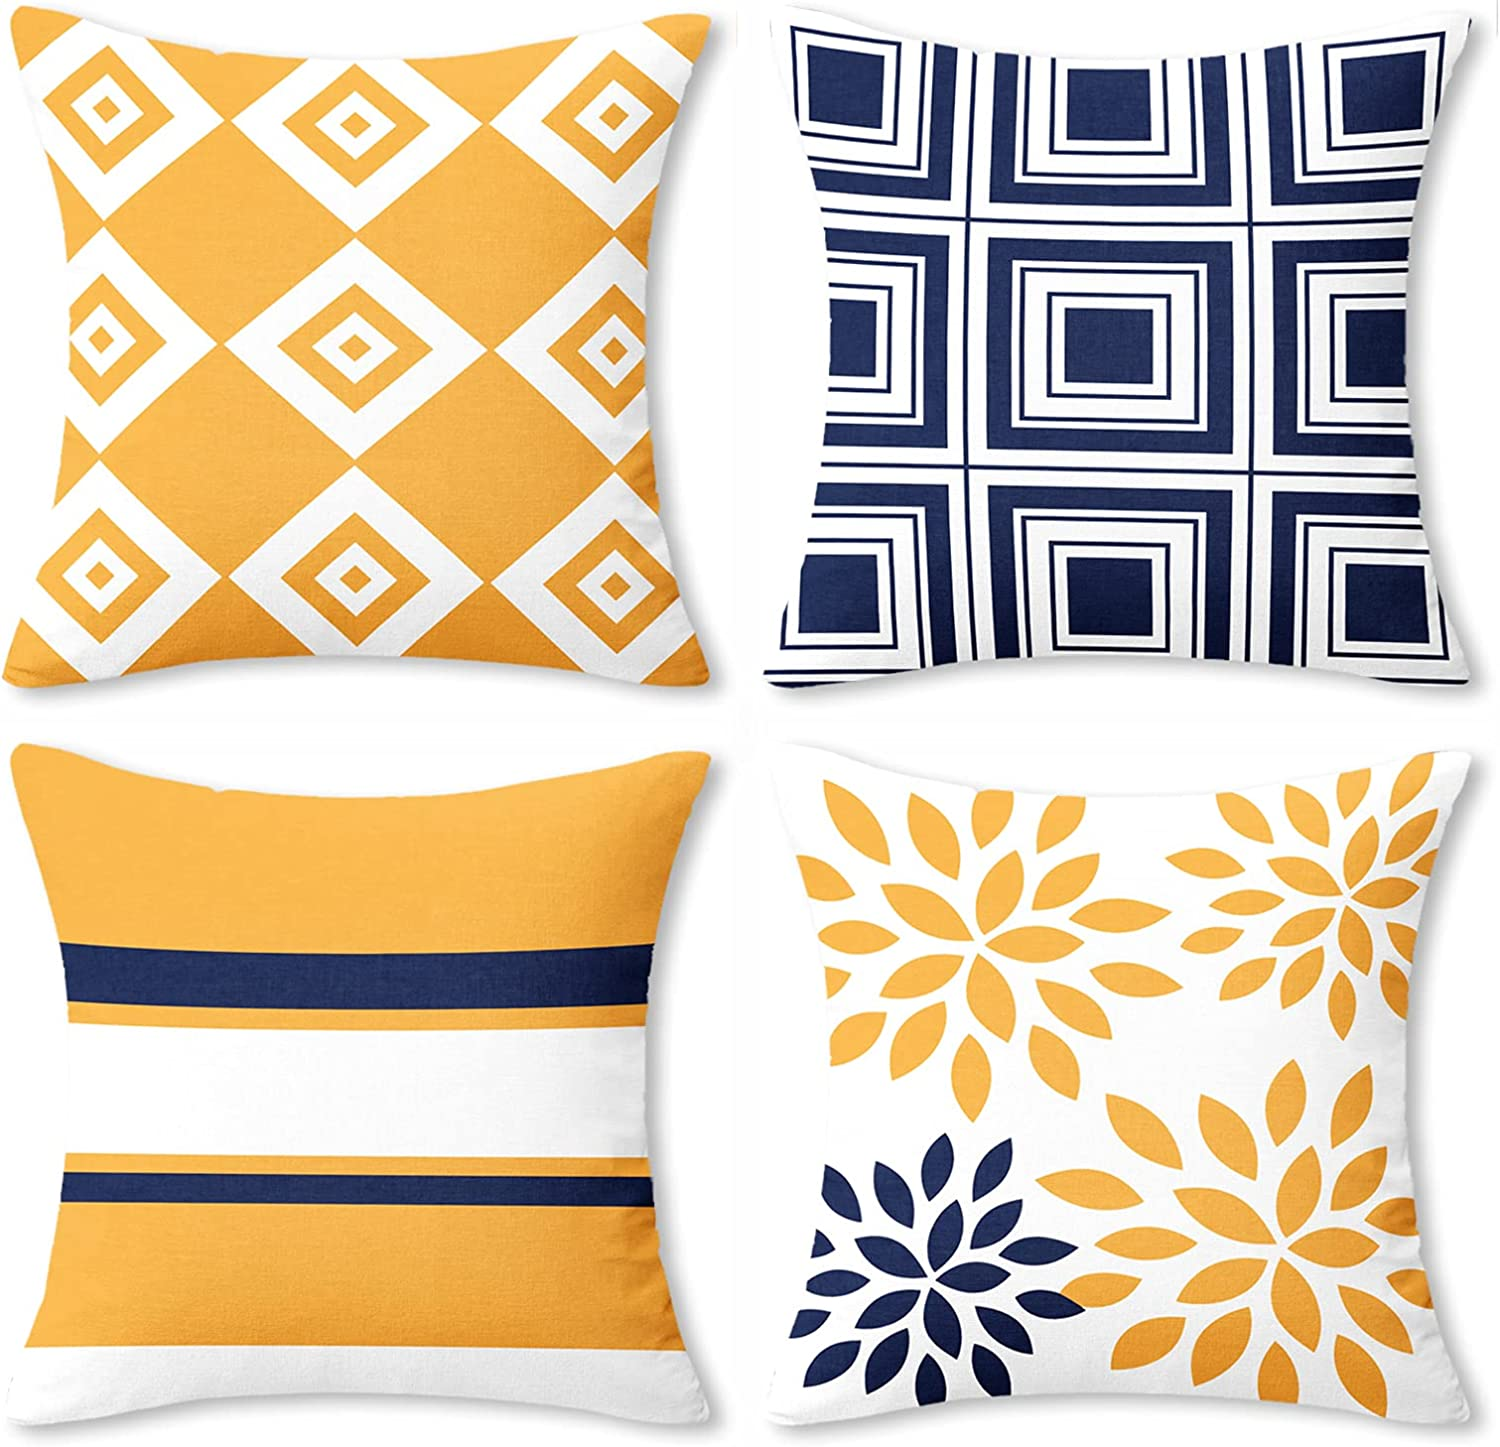 Maliton Throw Pillow National products Covers 18x18 Roo Living Pillows for Super beauty product restock quality top Couch